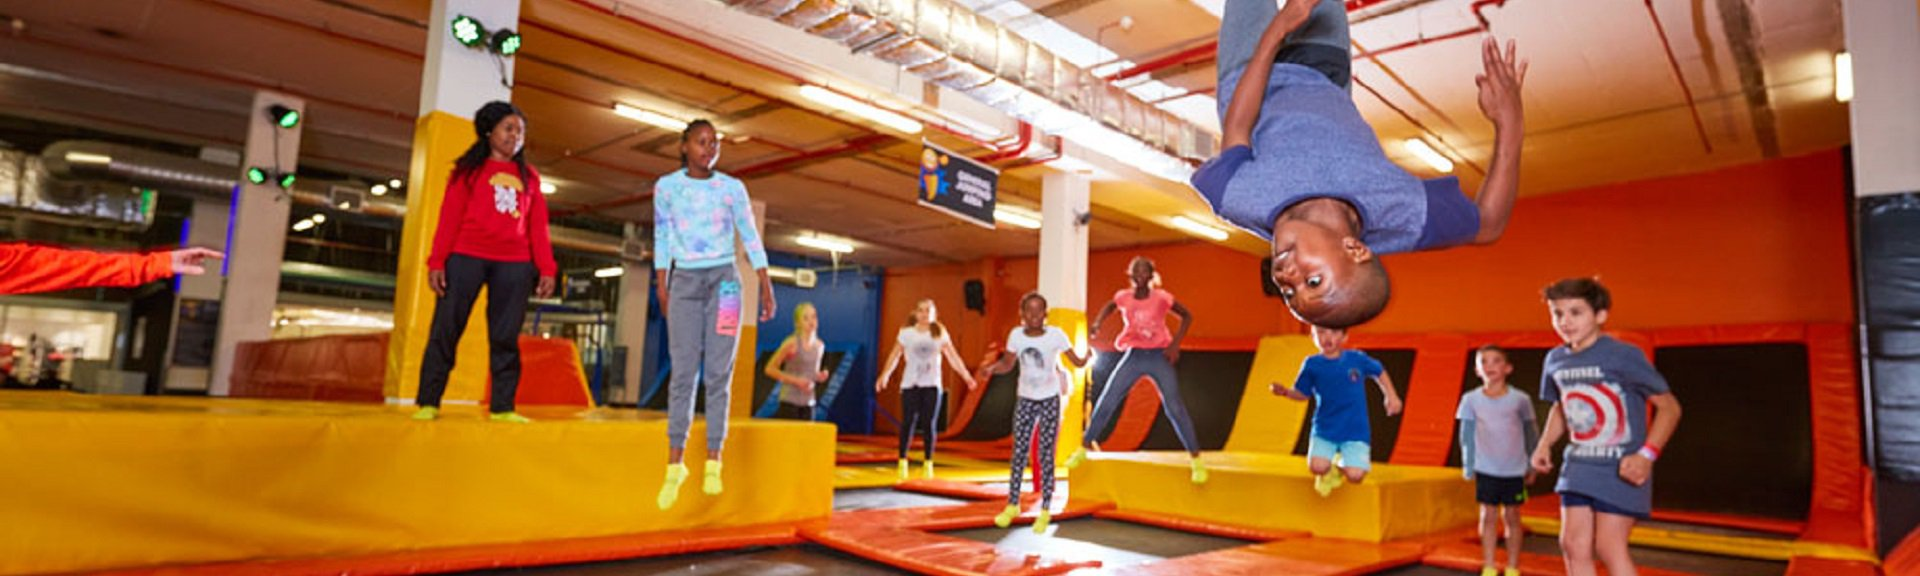 iJUMP trampoline Park | Boksburg | Indoor Party Venue